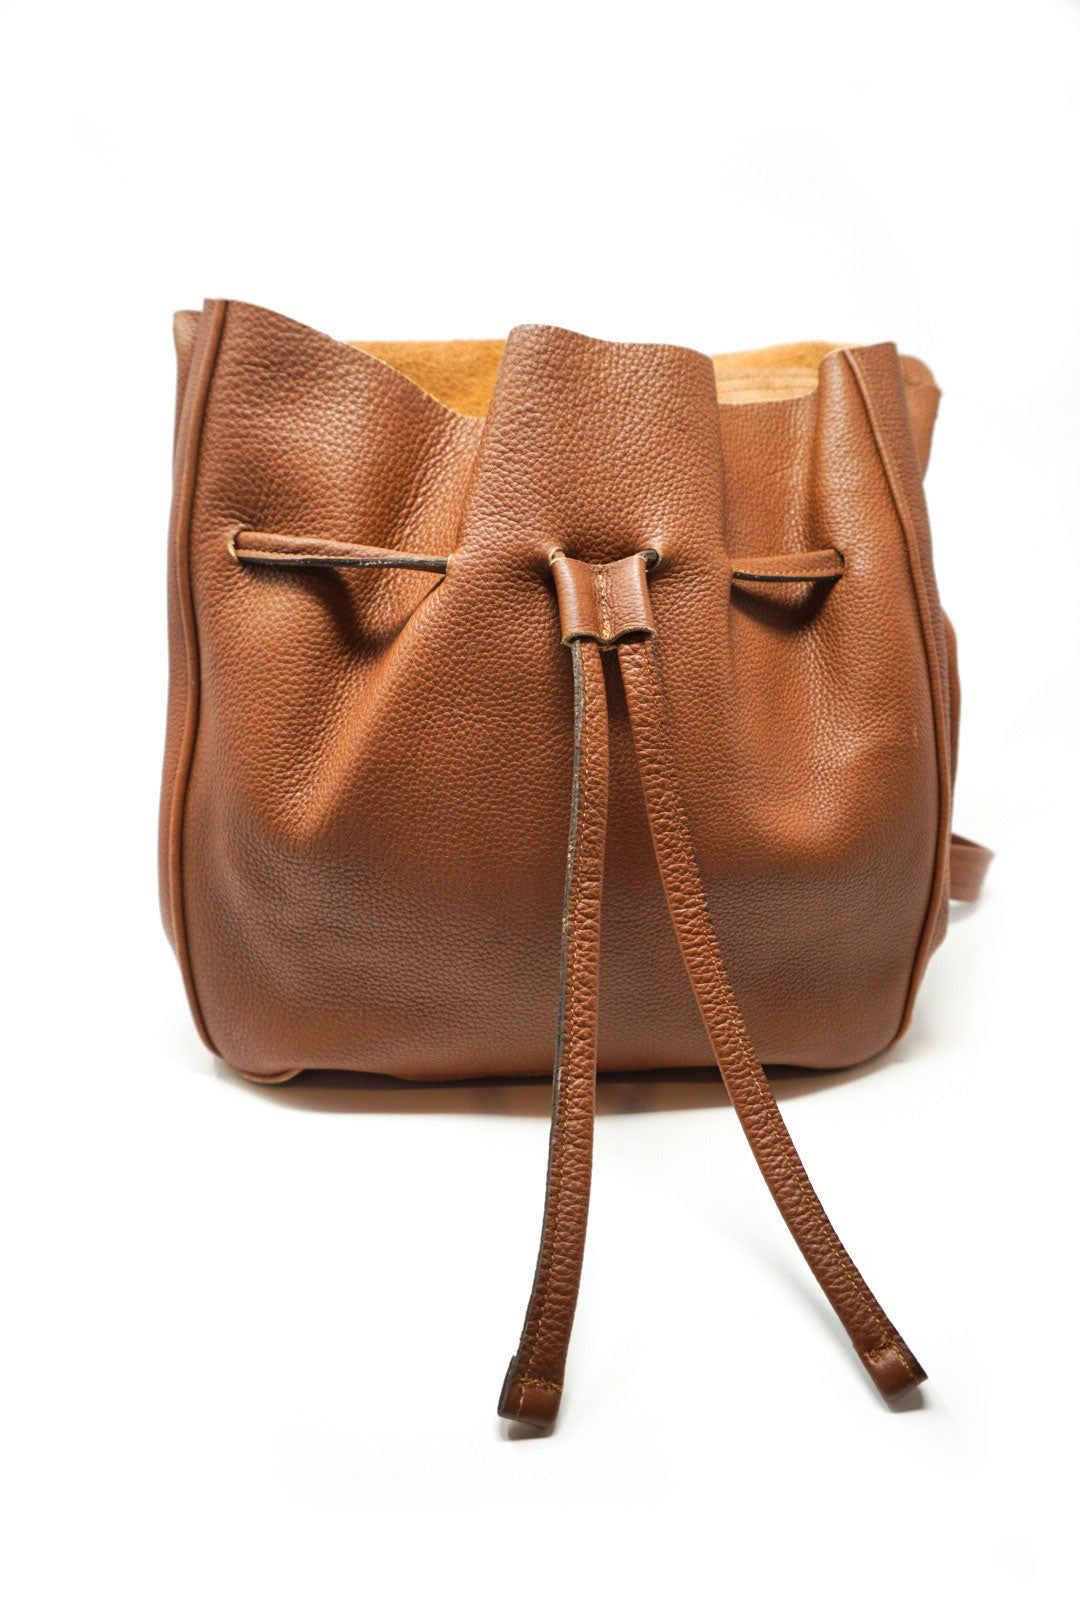 Presley Leather Backpack